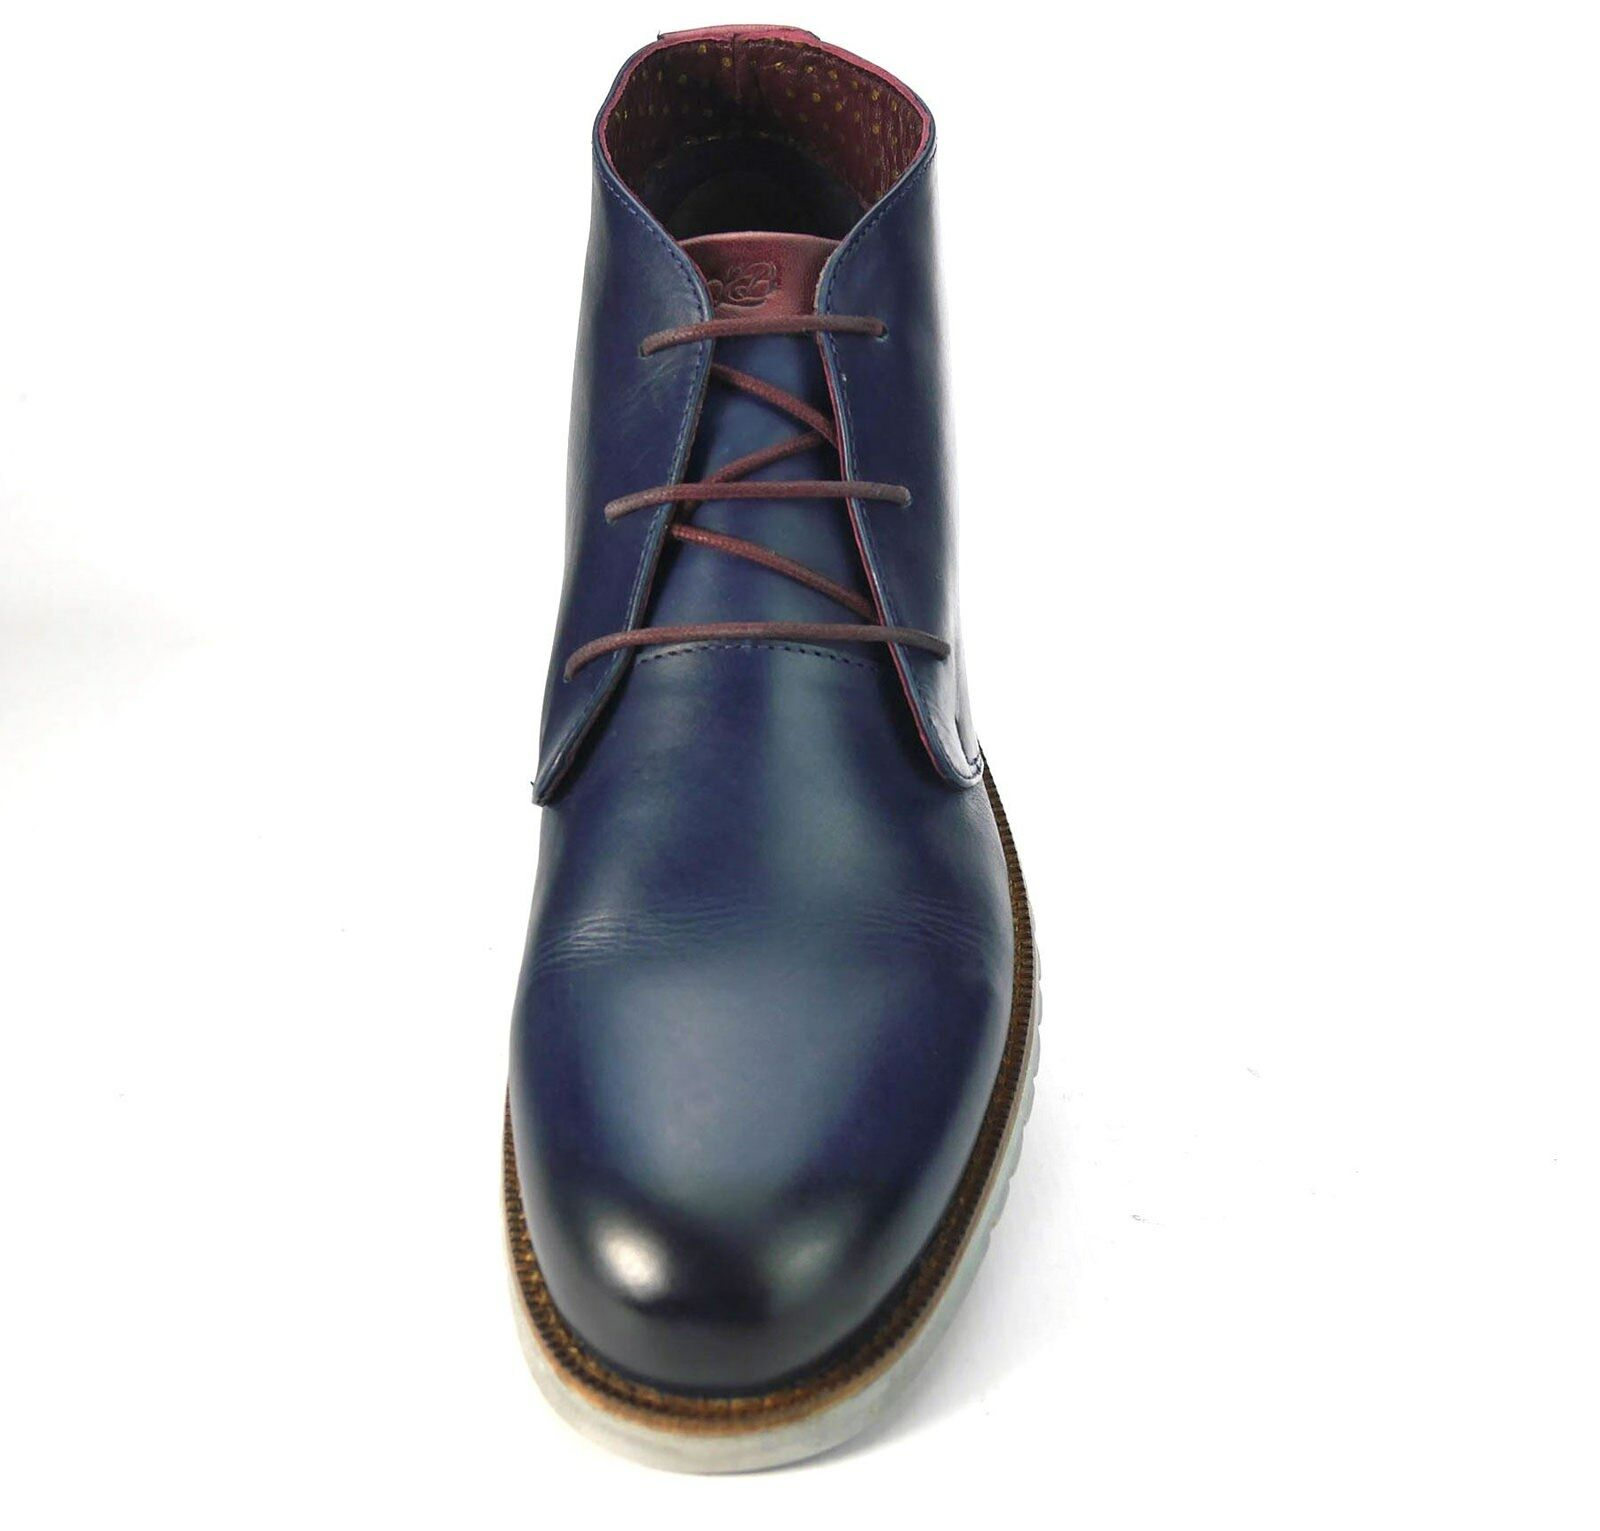 London Brogues Gatz  Lightweight Uomo Casual Chukka Ultra Lightweight  Stiefel Navy Schuhes 5c593b